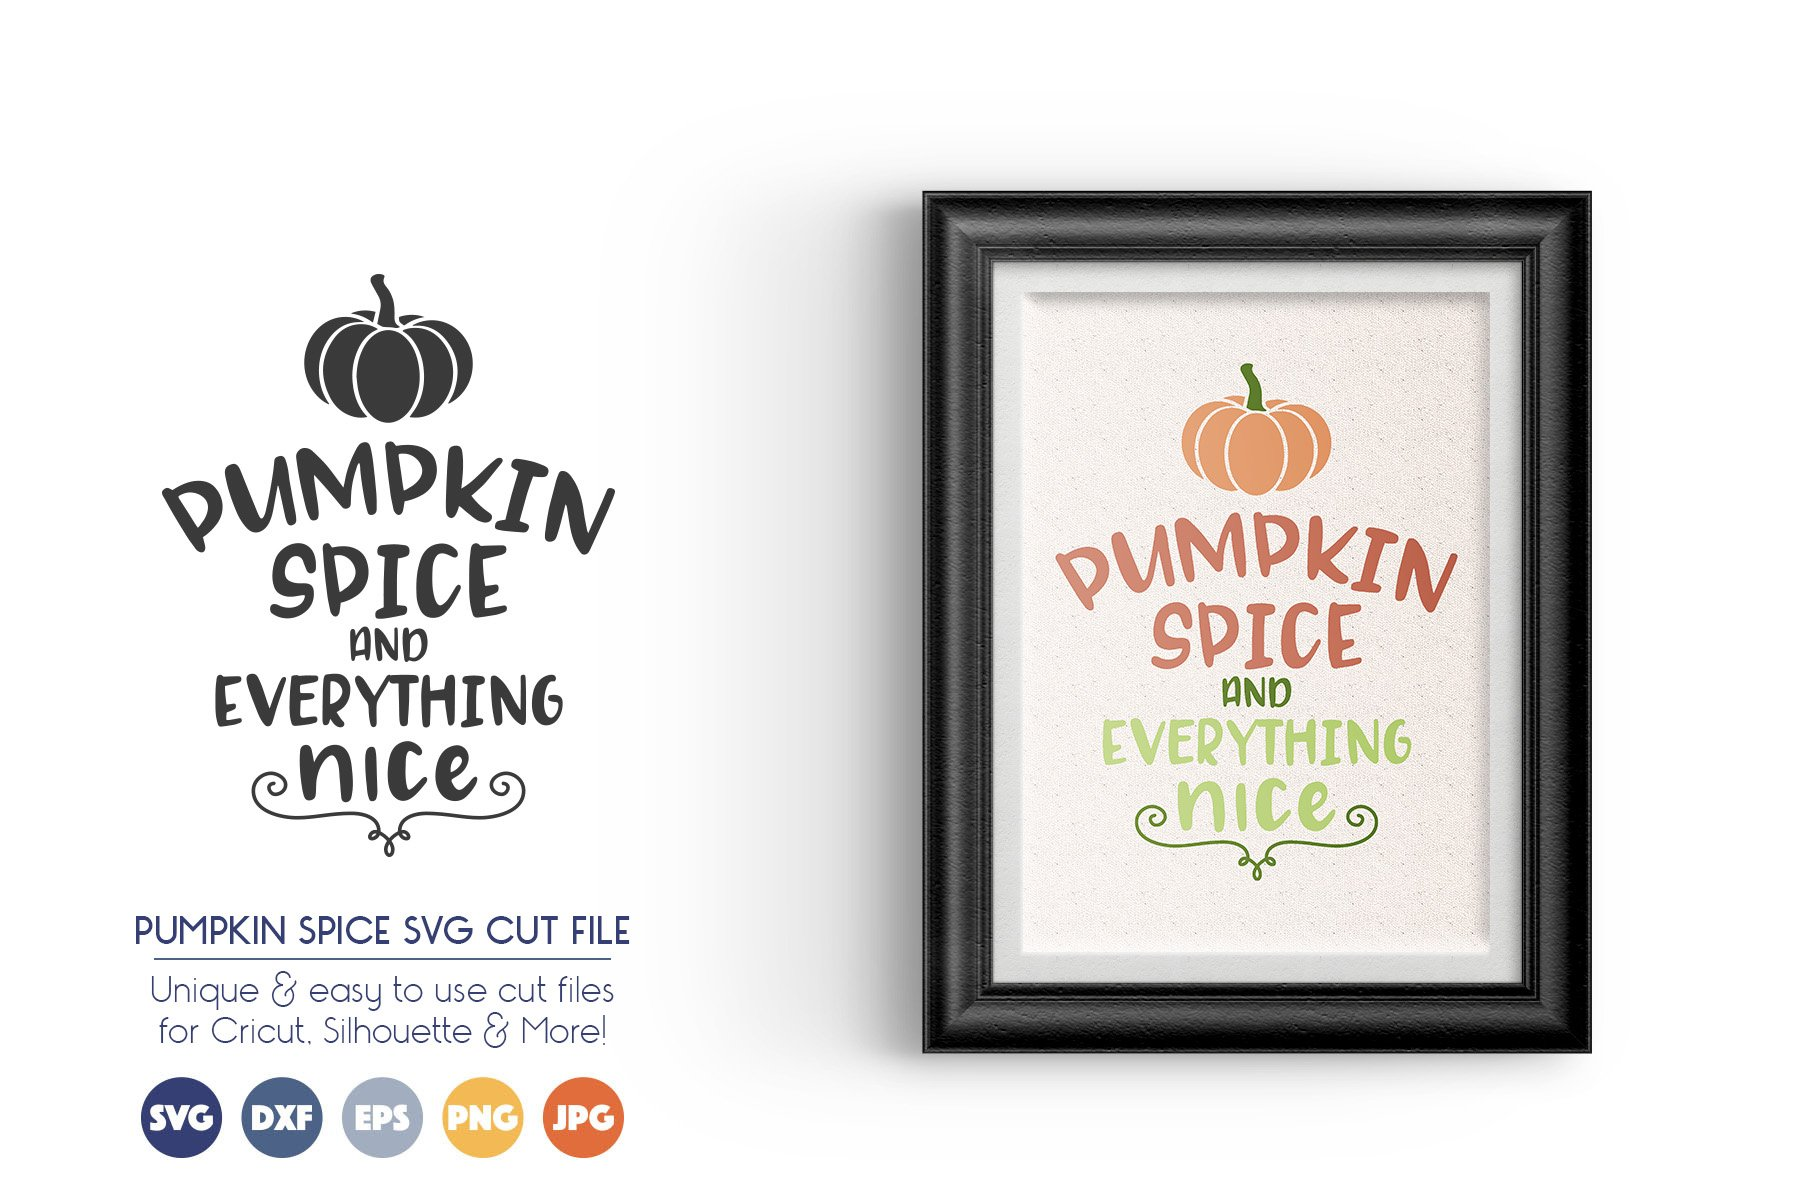 Halloween SVG Files - Pumpkin Spice and Everything Nice example image 1